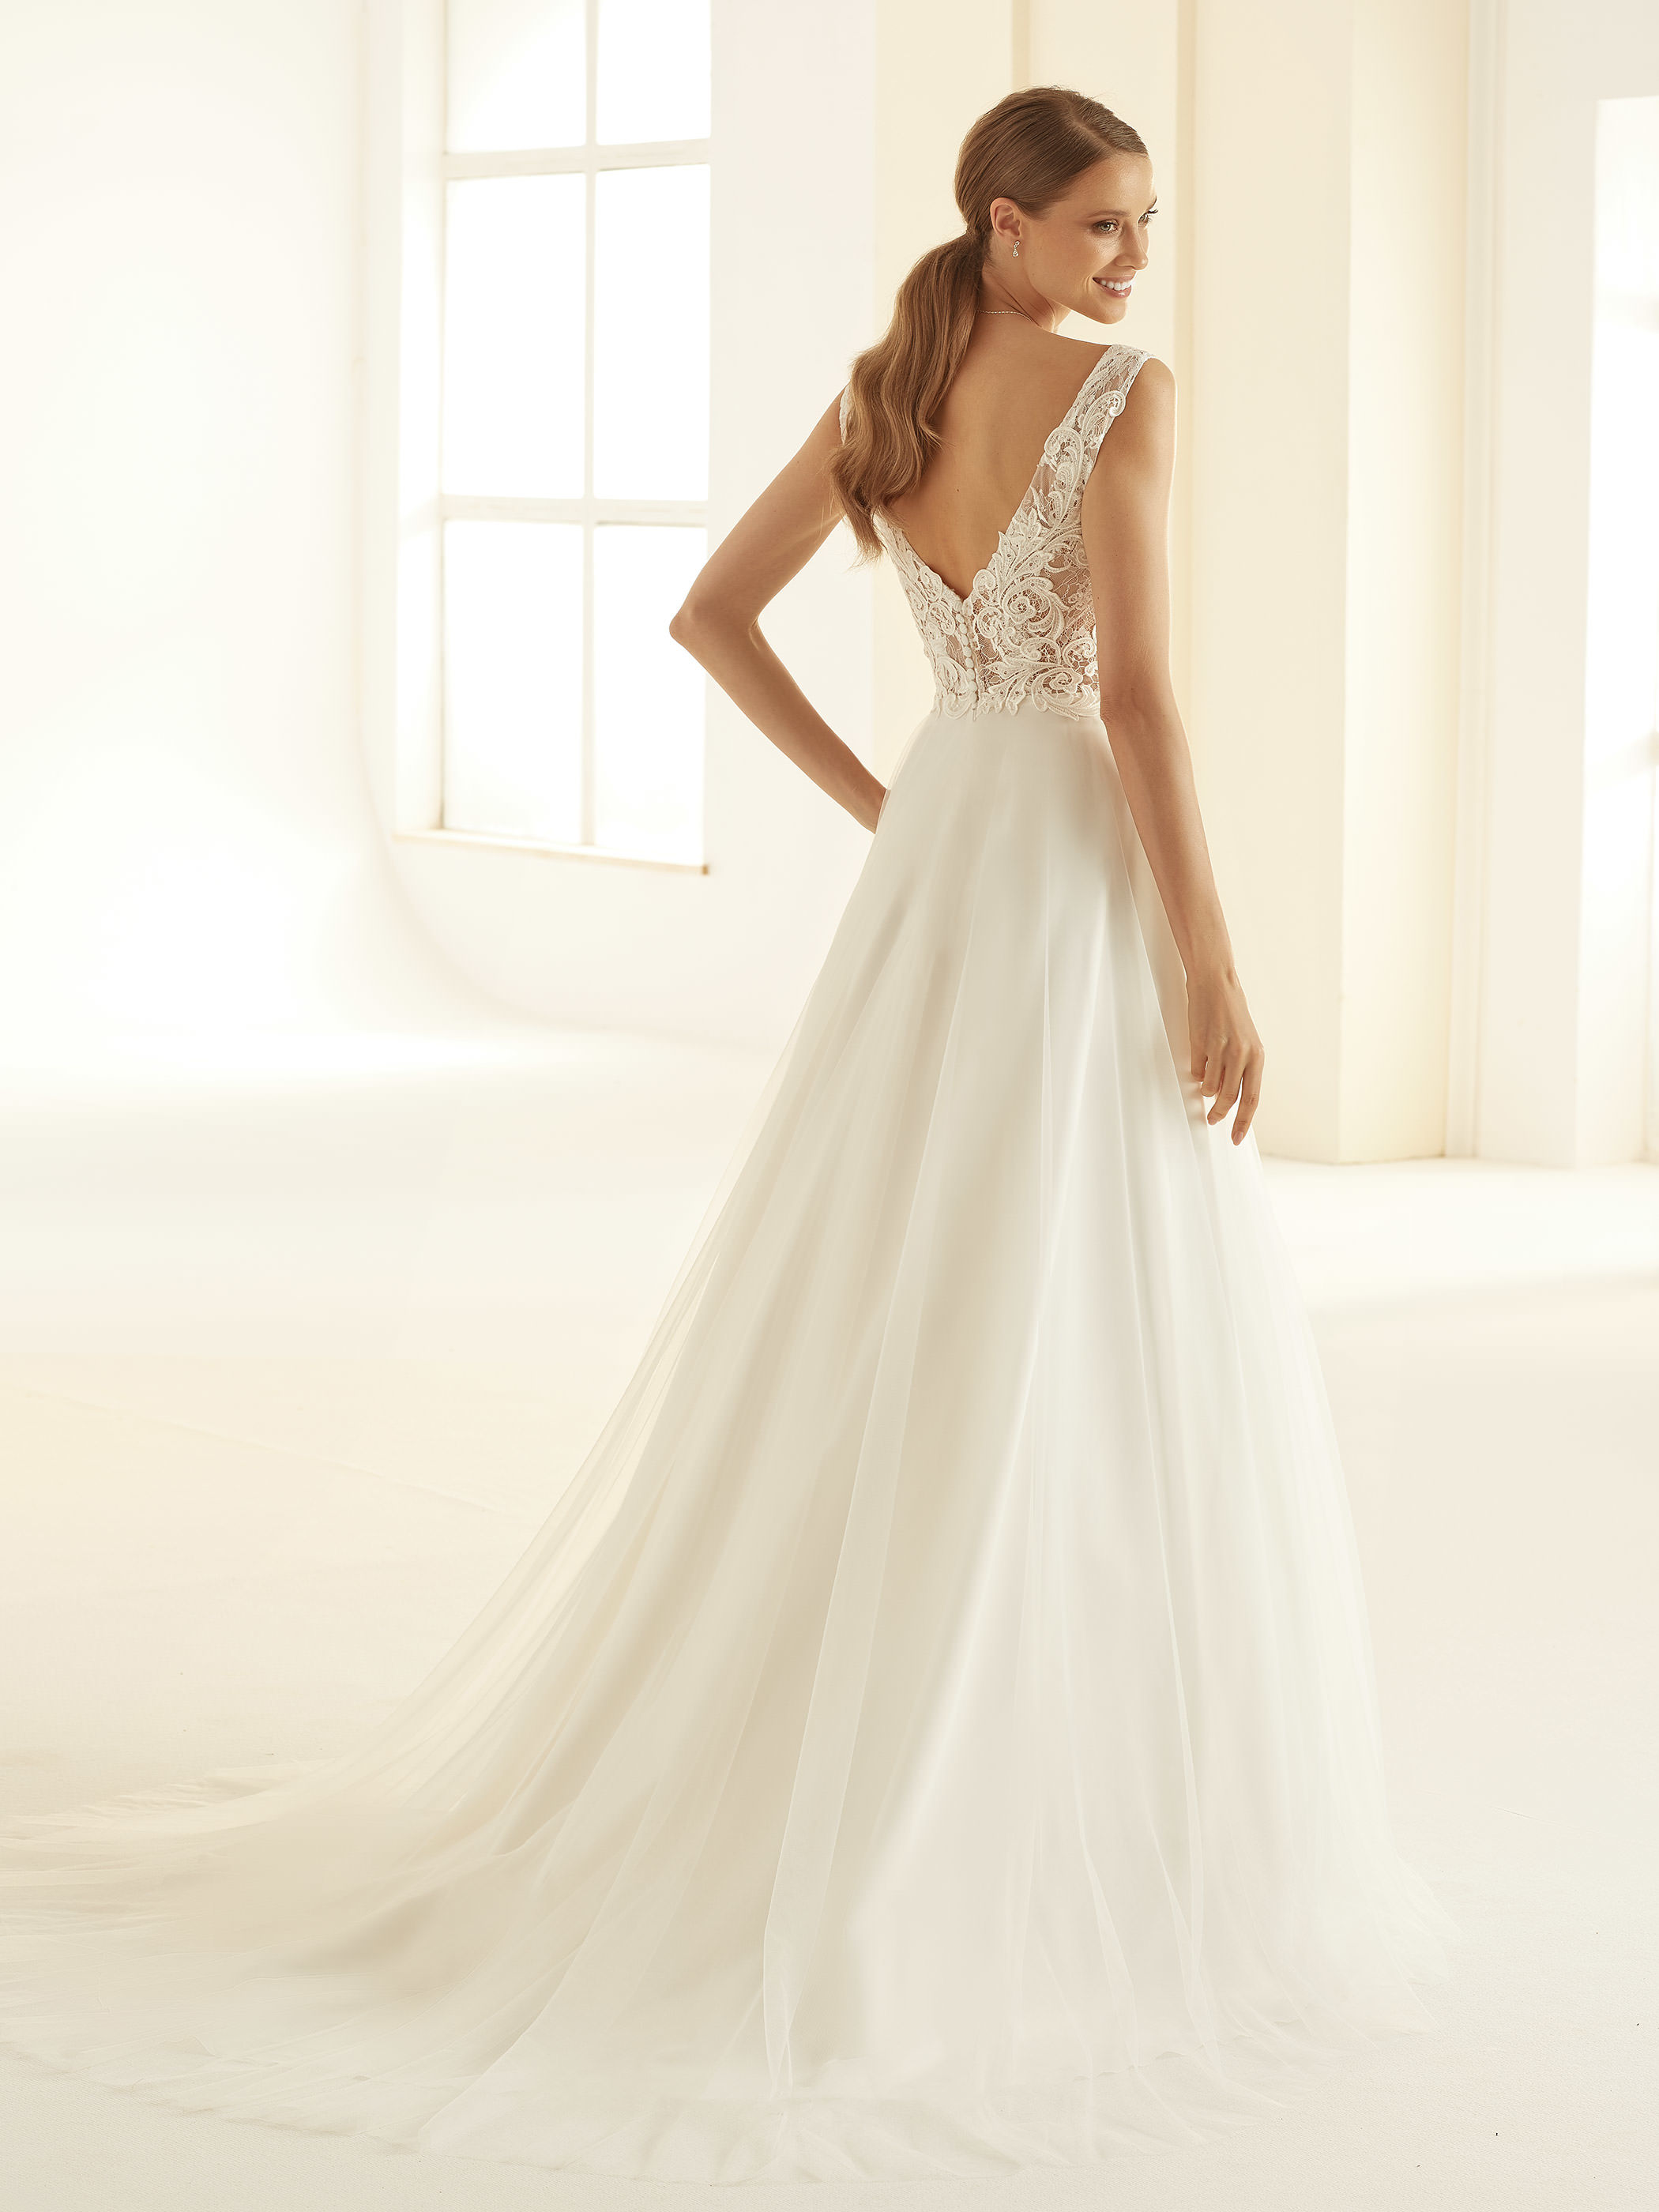 bianco-evento-bridal-dress-preciosa-_3__